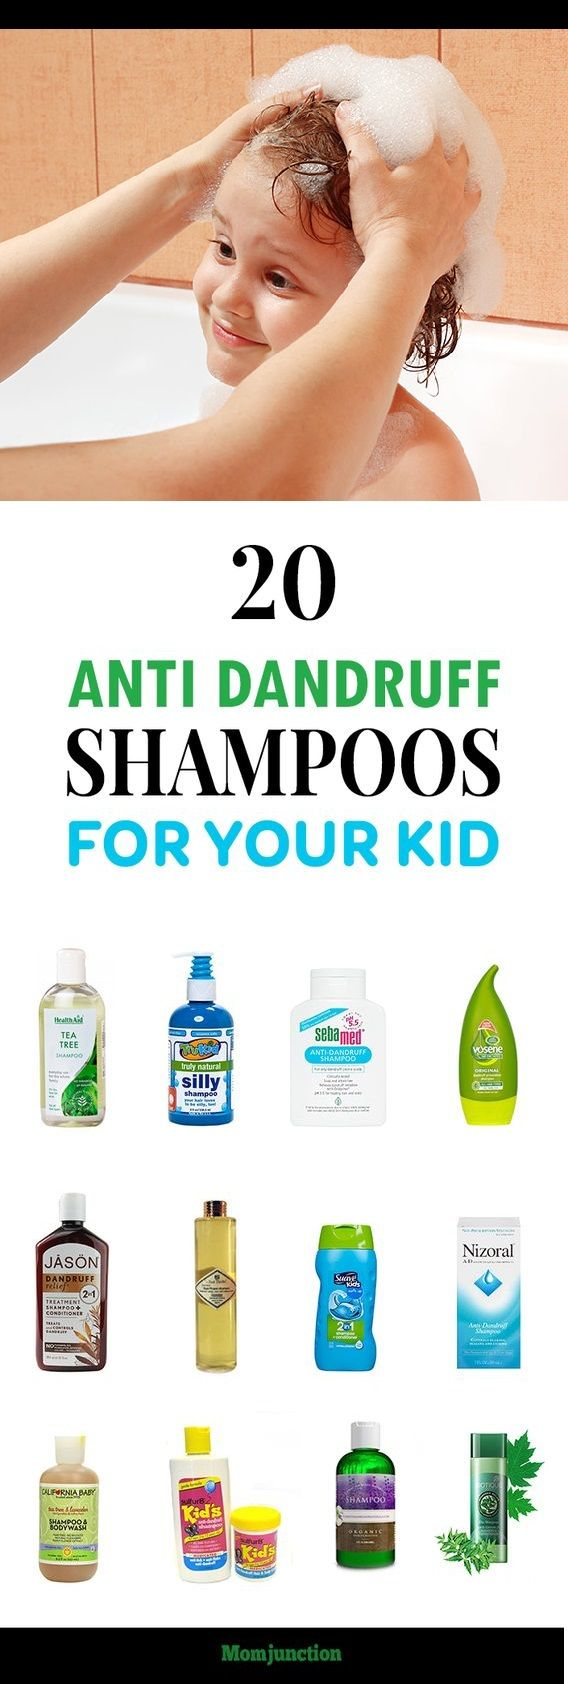 #Home #remedies are the best solution for getting rid of dandruff, but they can take some time to show results. If you want a quick fix, anti dandruff shampoo is the way to go.And, we know how irritating is to look for the best anti dandruff shampoo. So, MomJunction has put together a list of the top and best anti #dandruff #shampoo for #kids. Check them out below.